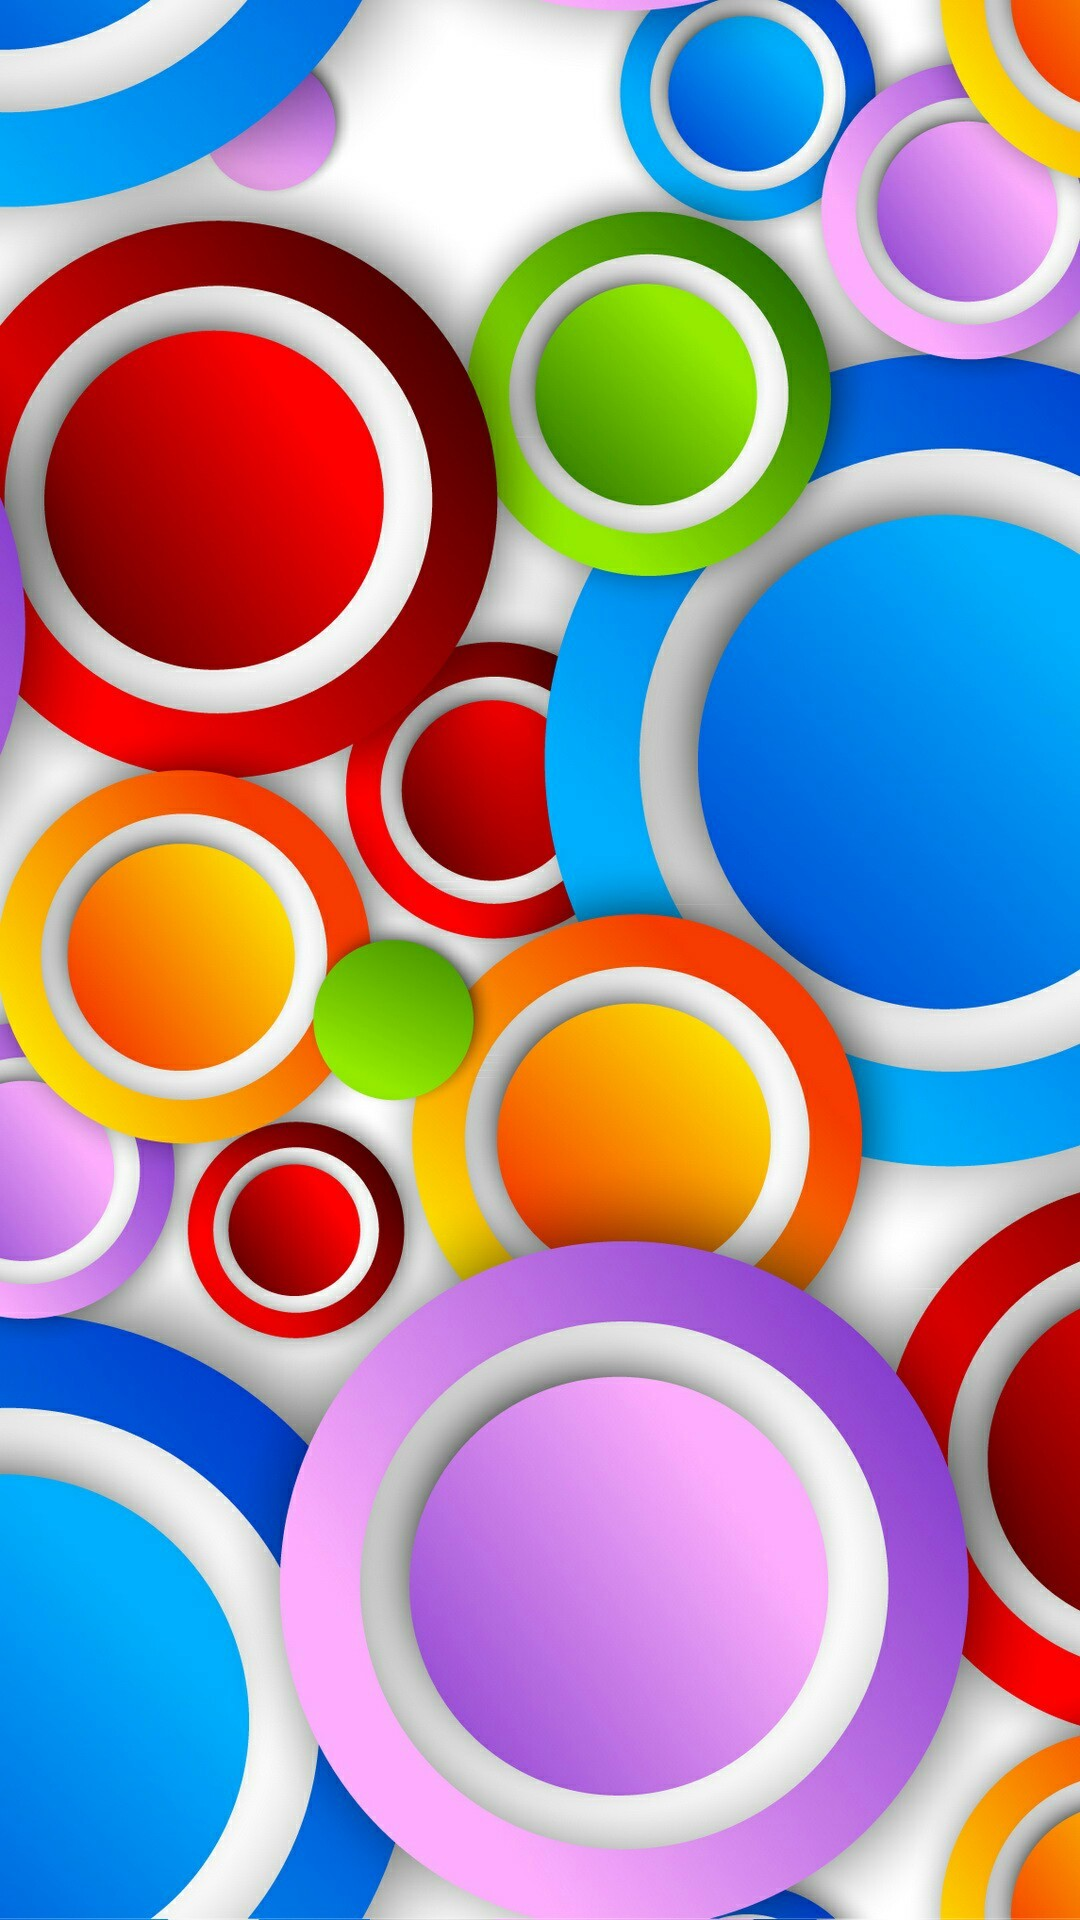 1080x1920 Colorful Circles with White Trim Wallpaper